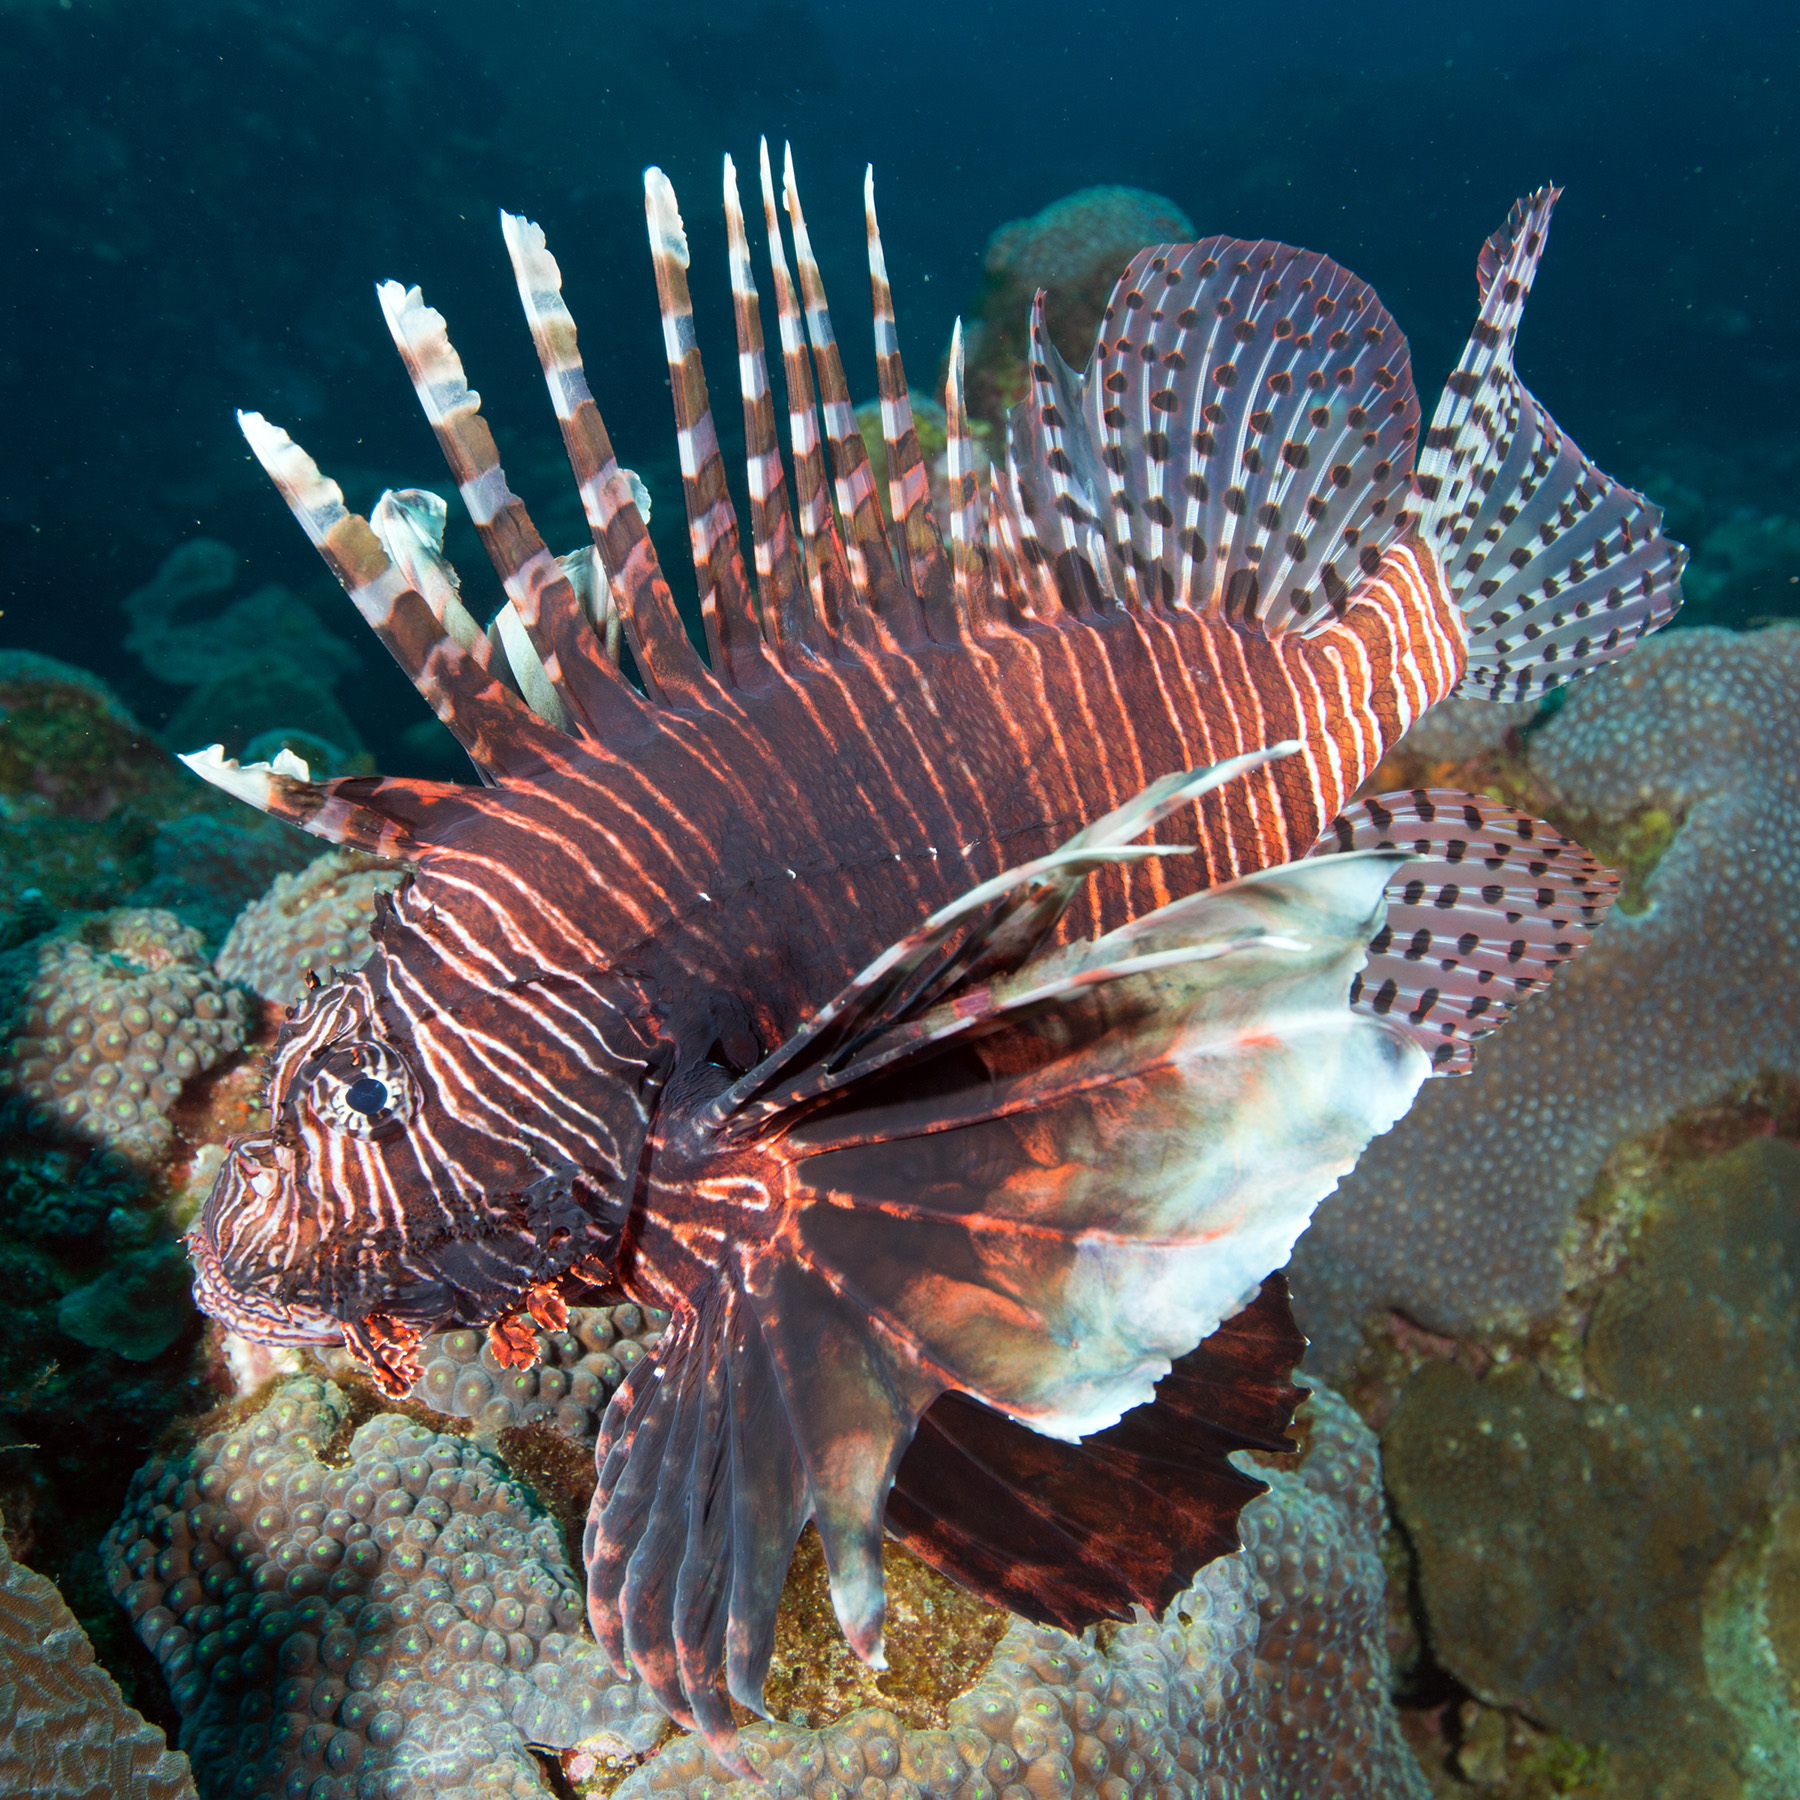 A large lionfish on the reef at West Flower Garden Bank.